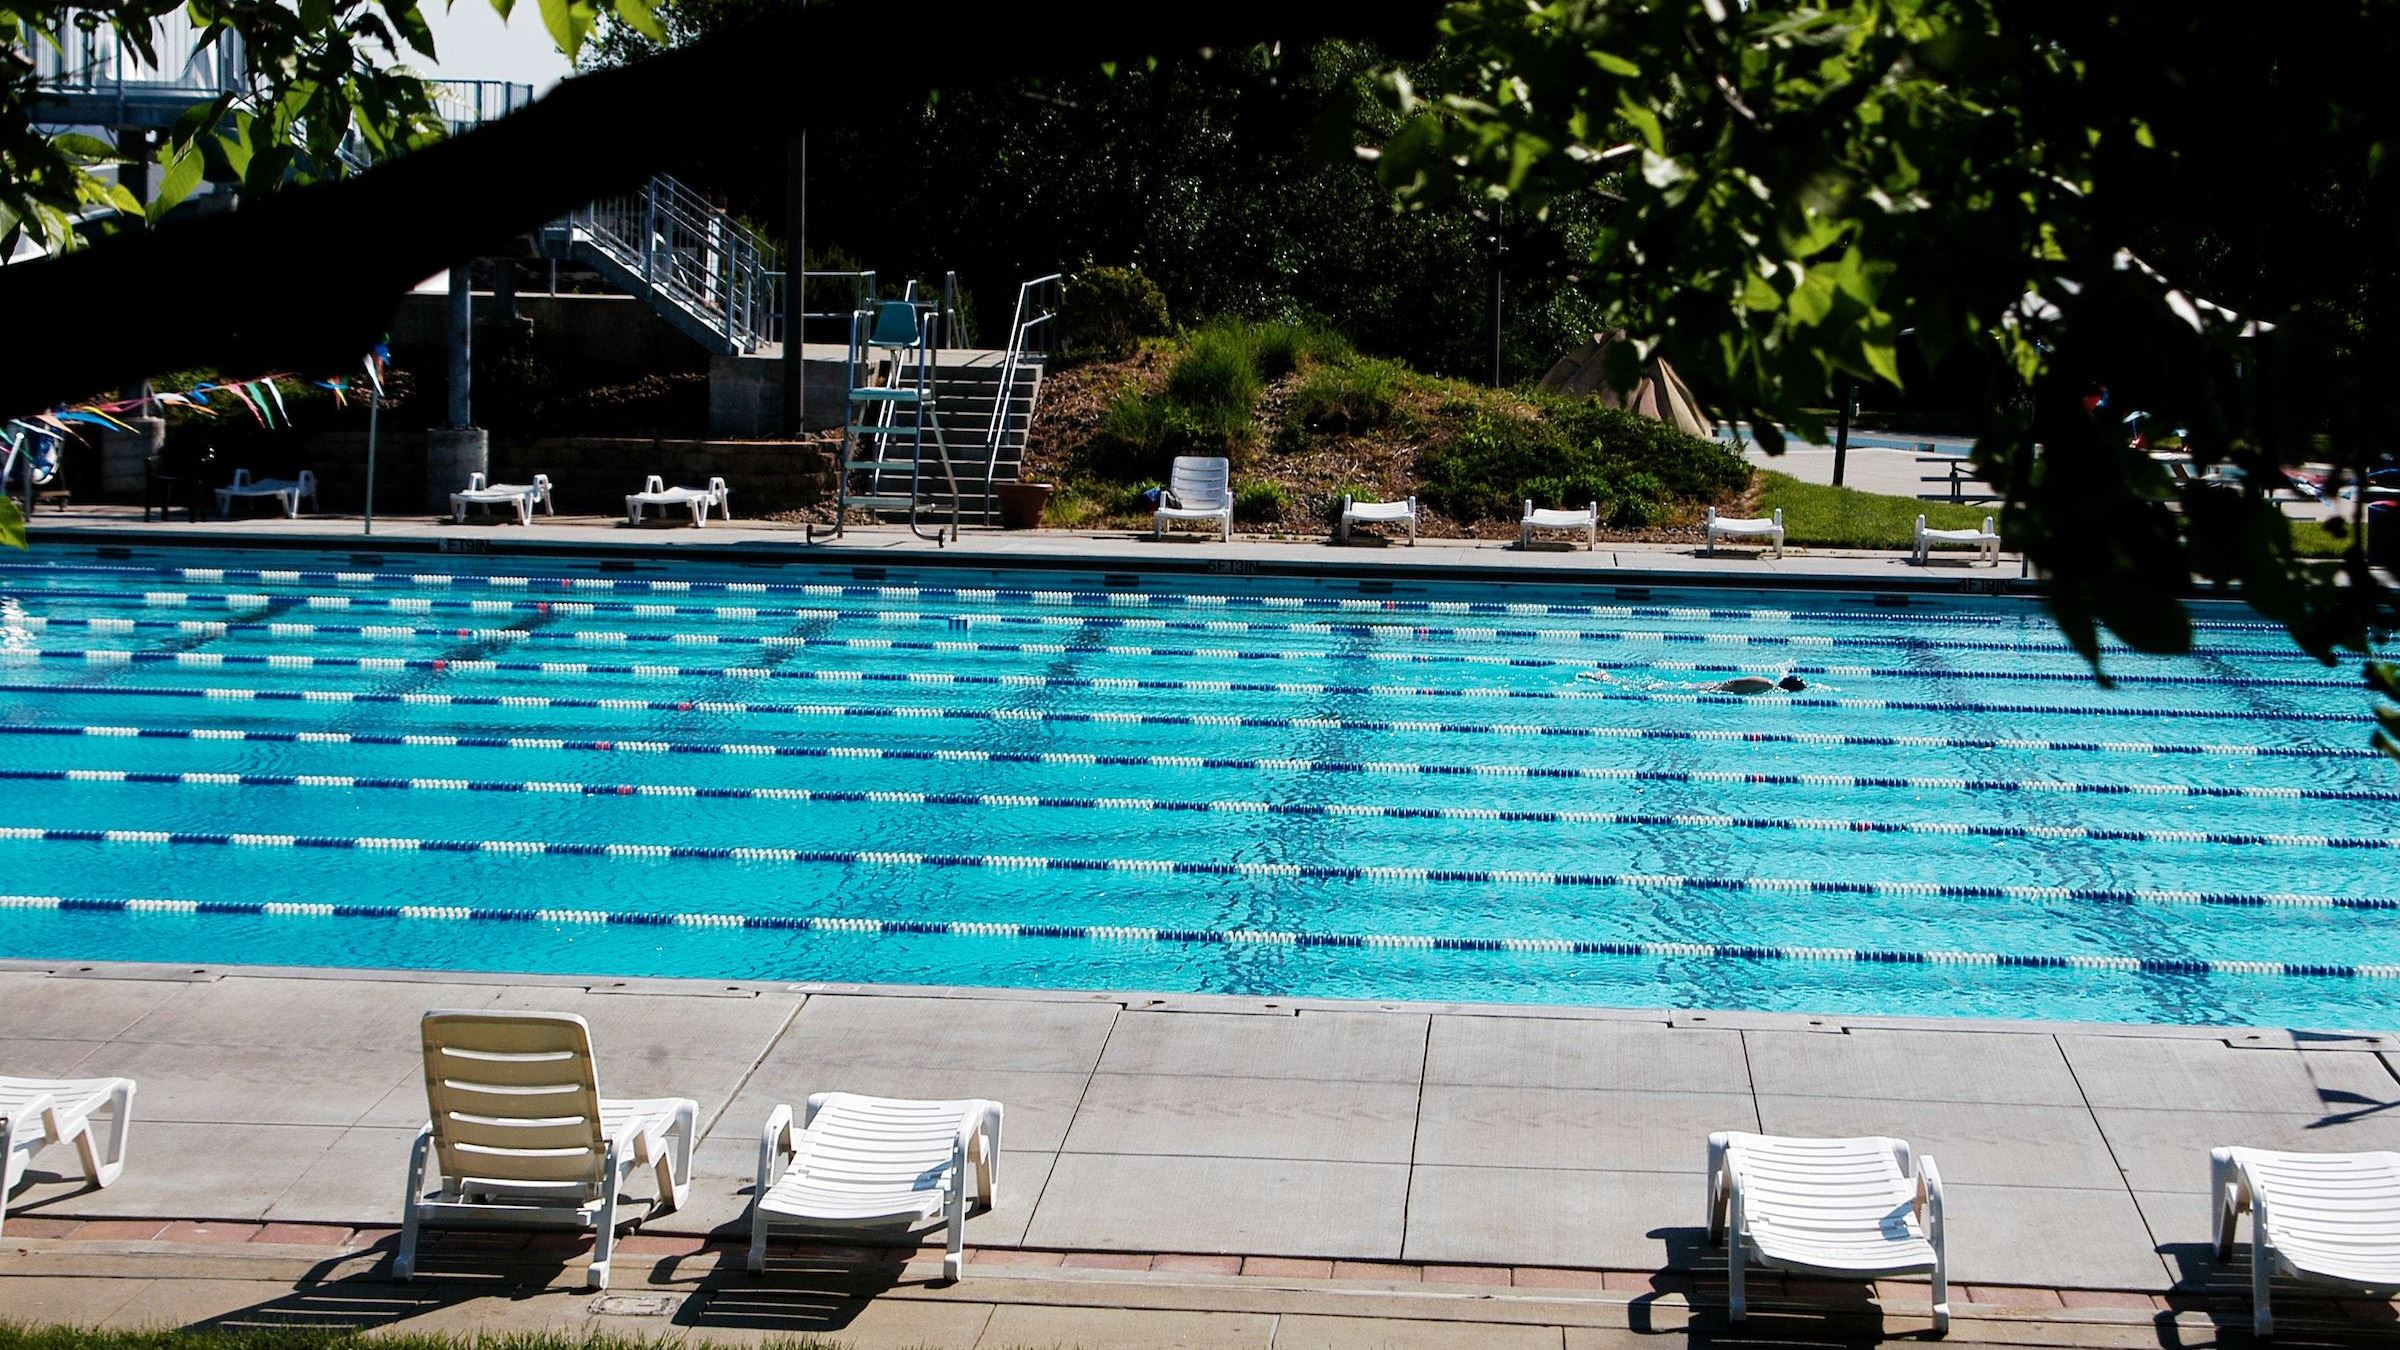 Roeland Park Aquatic Center